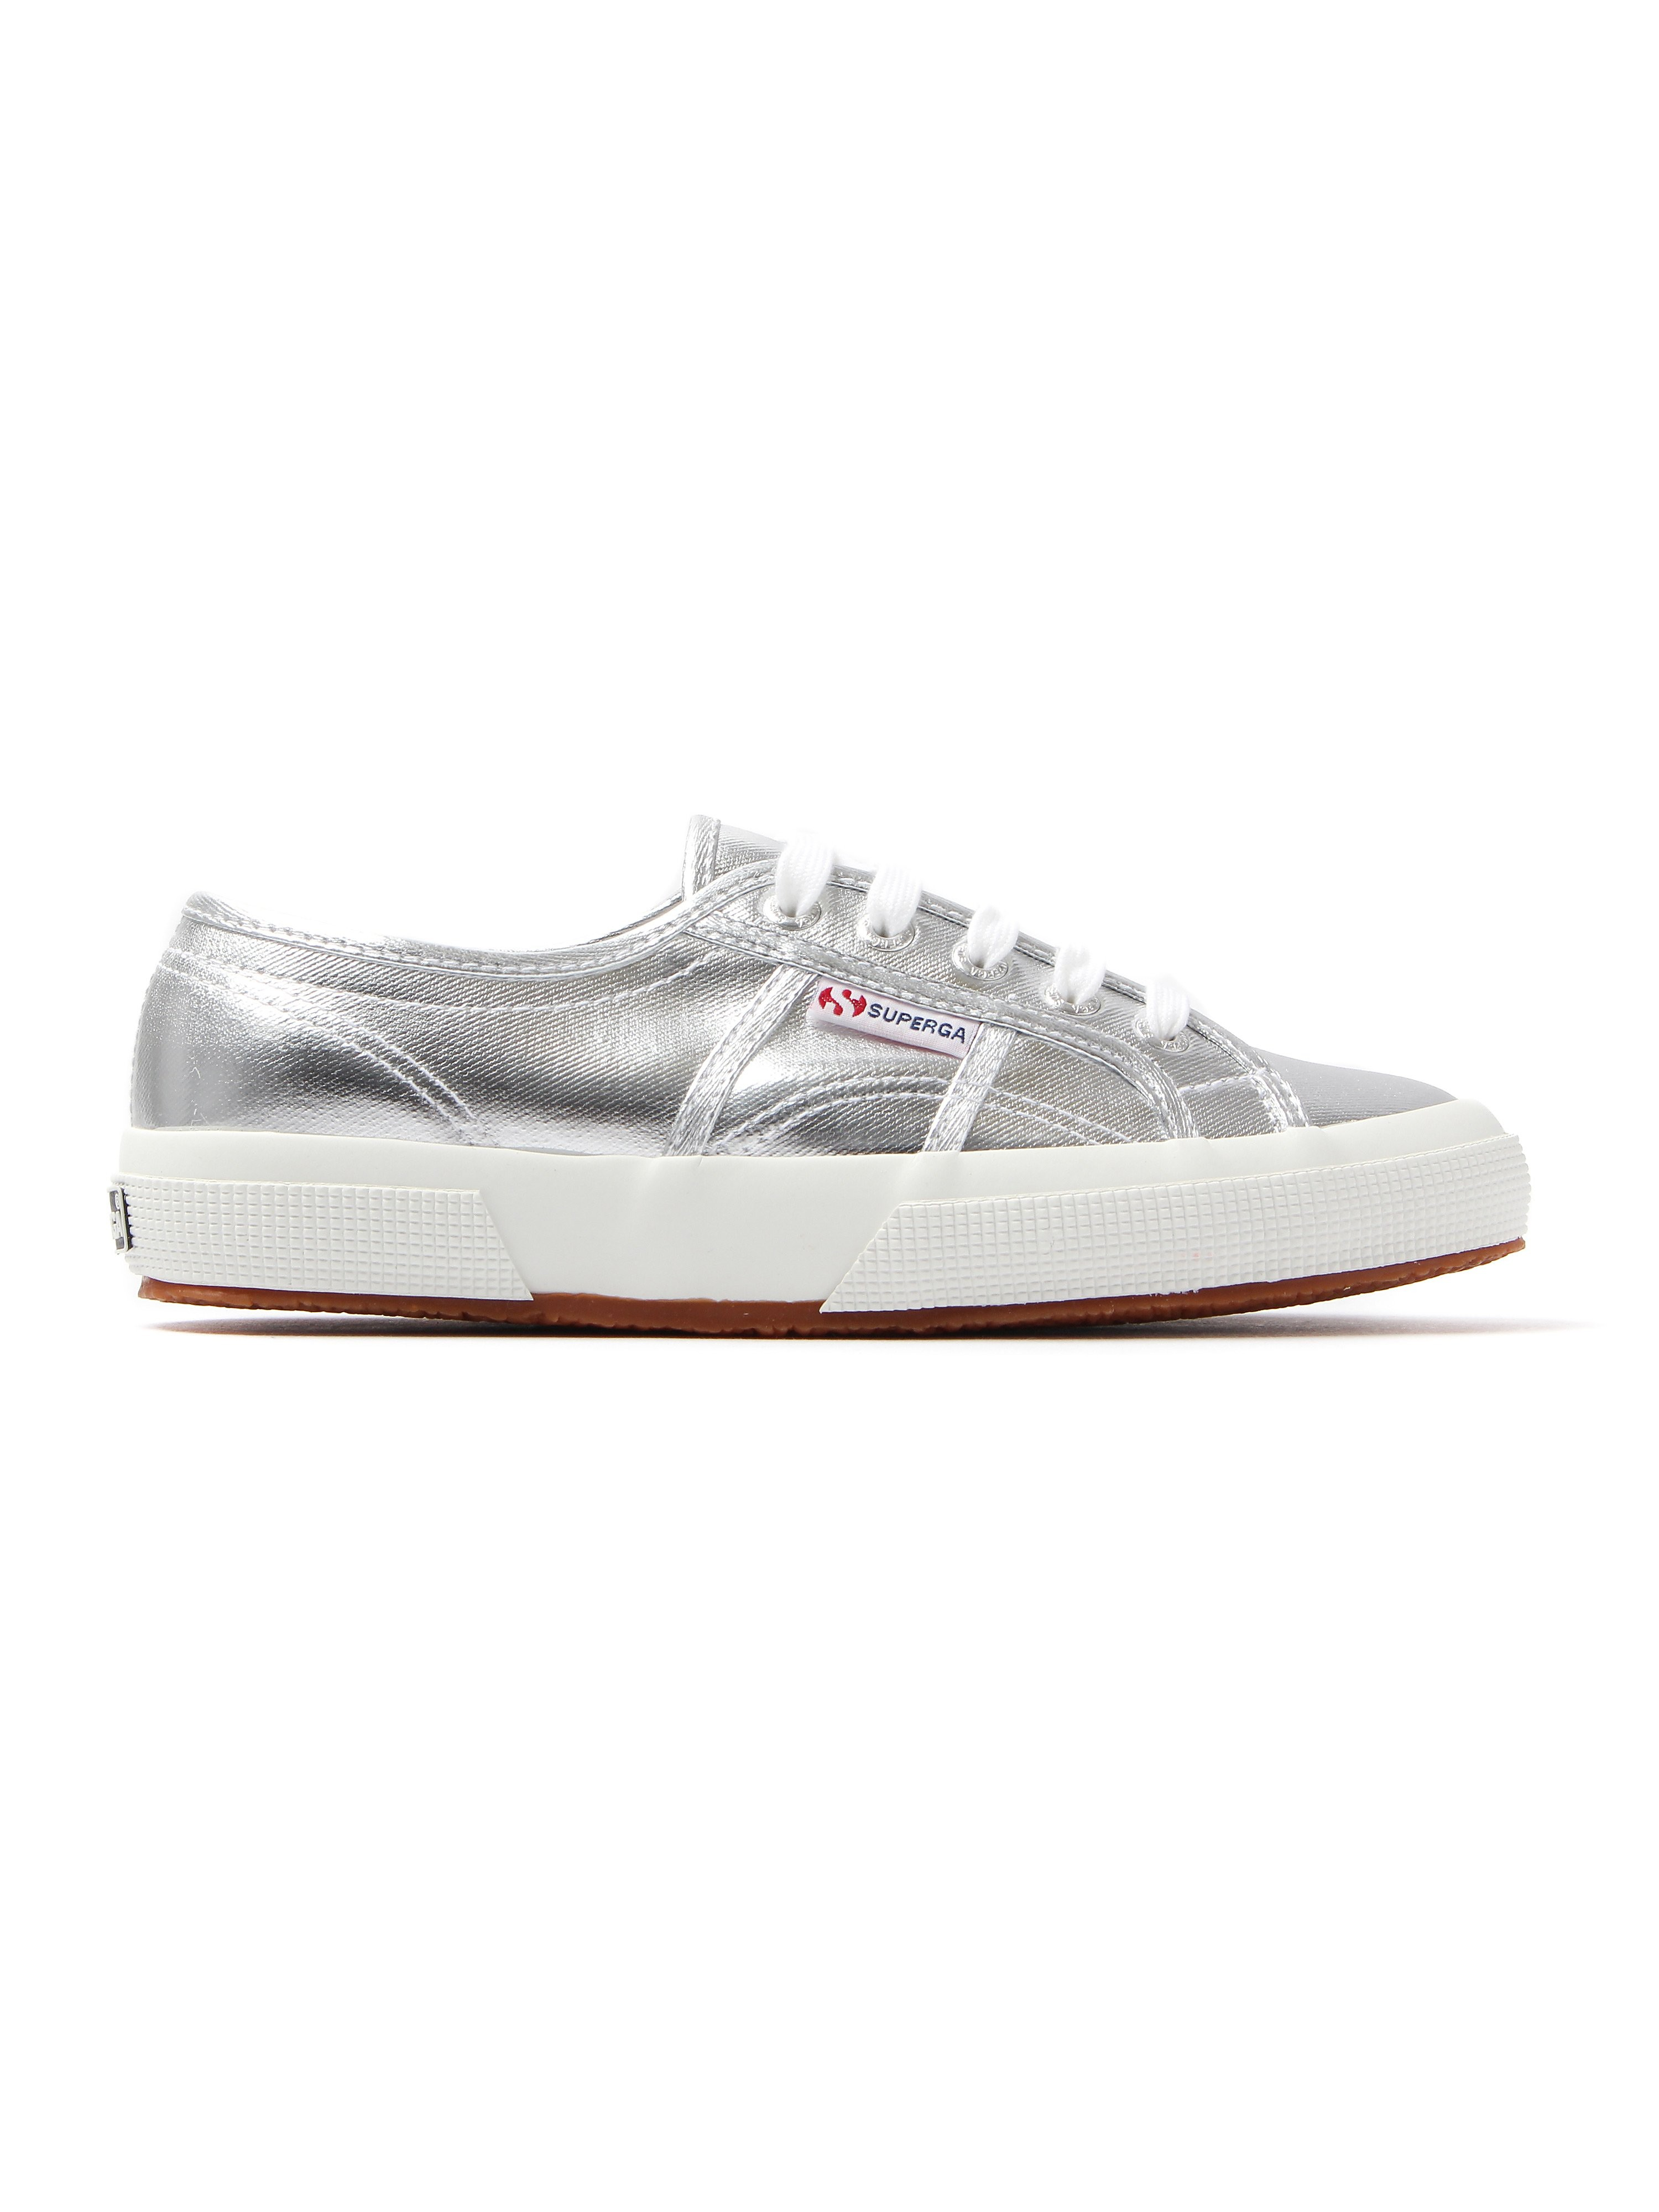 Superga Women's 2750 Metu Metallic Canvas Trainers - Silver